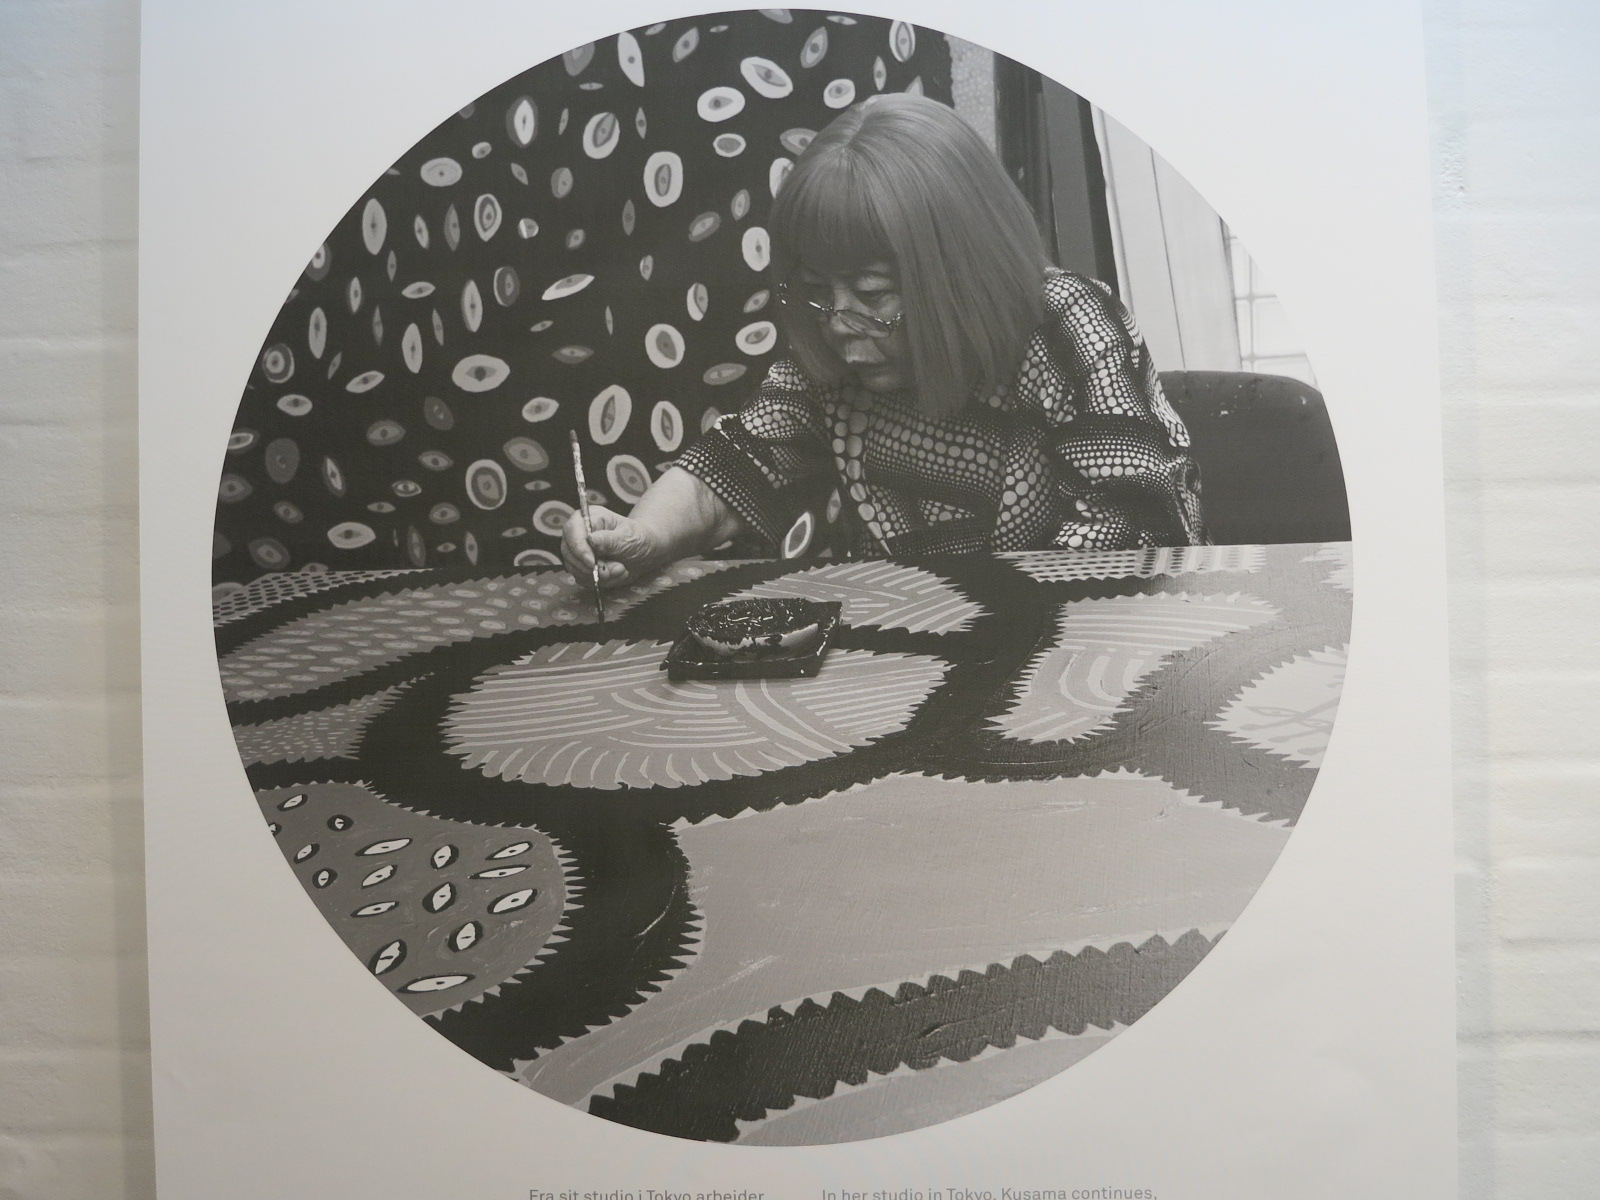 A recent photograph of Yayoi Kusama working on a painting for her 'My Eternal Soul' series